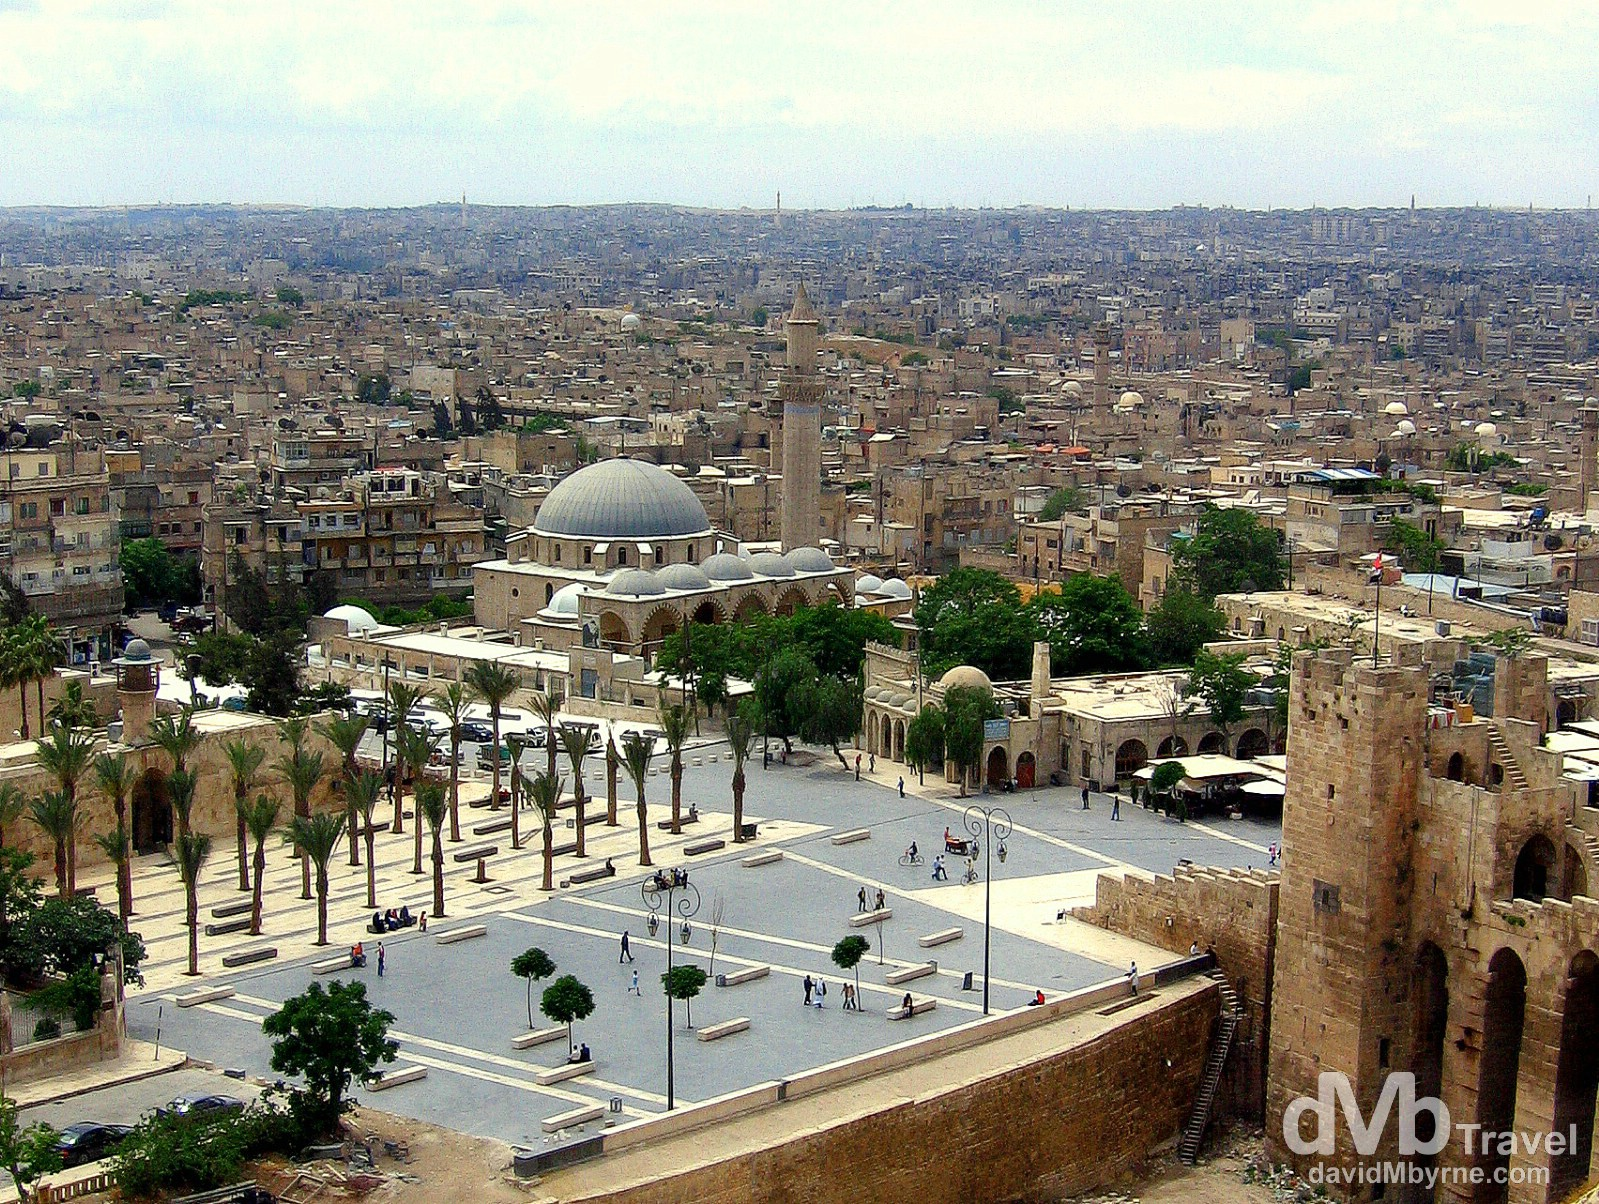 The Syrian city of Aleppo as seen from the walls of the city's fort. Aleppo, Syria. May 9, 2008.